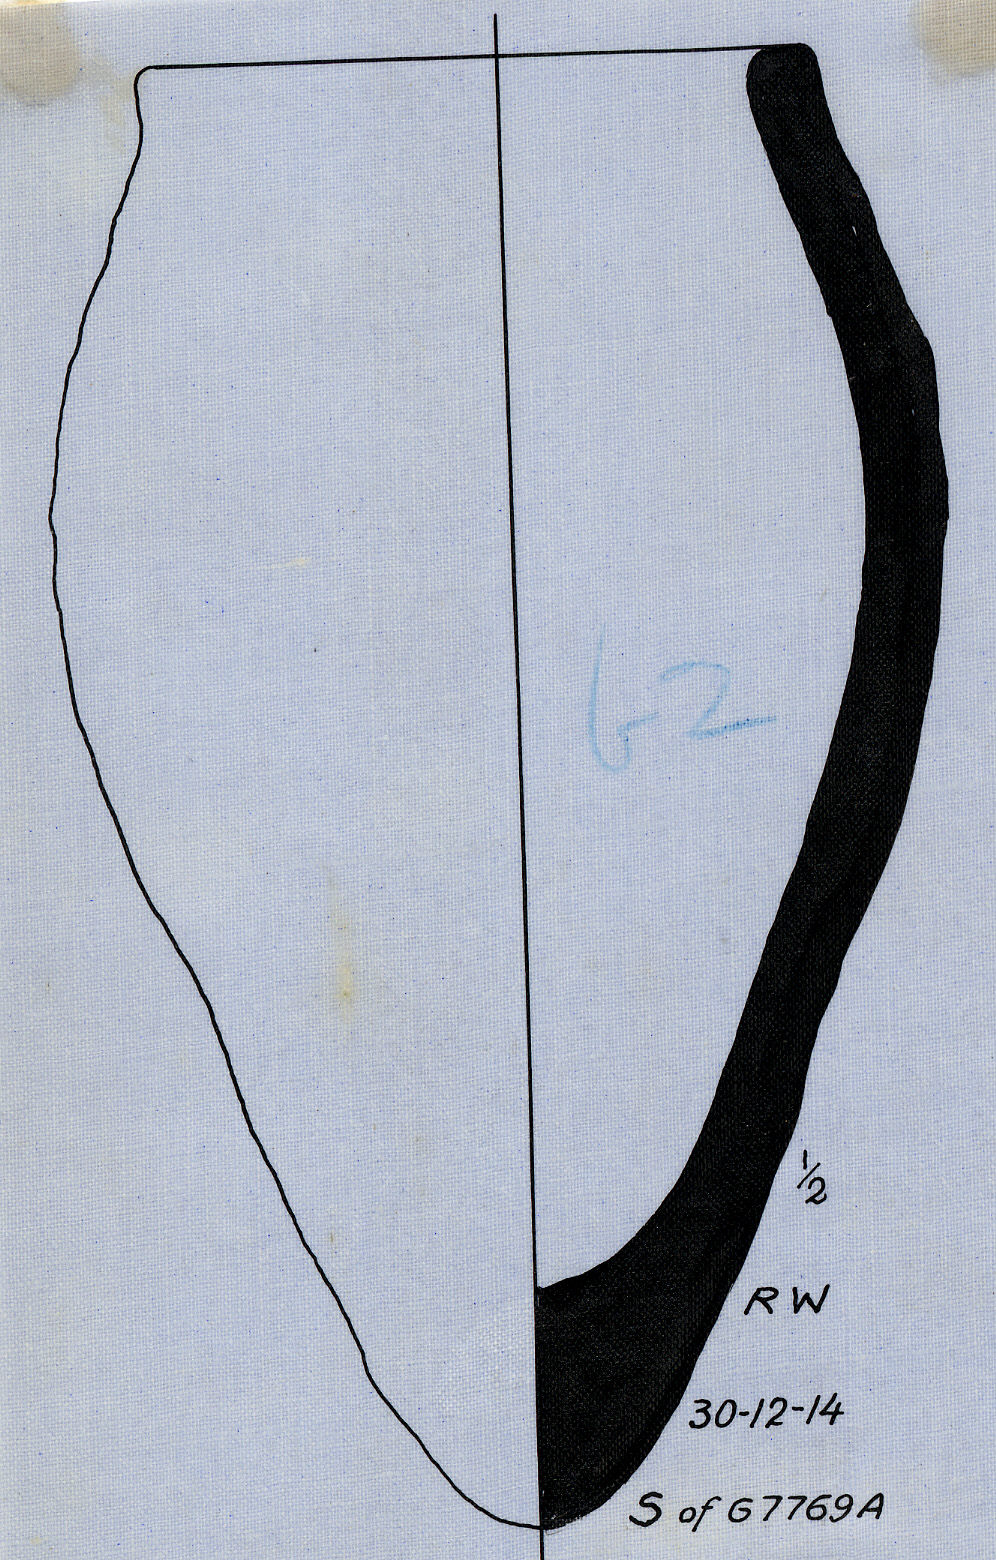 Drawings: G 7769, Shaft A: pottery, offering jar from SW of tomb